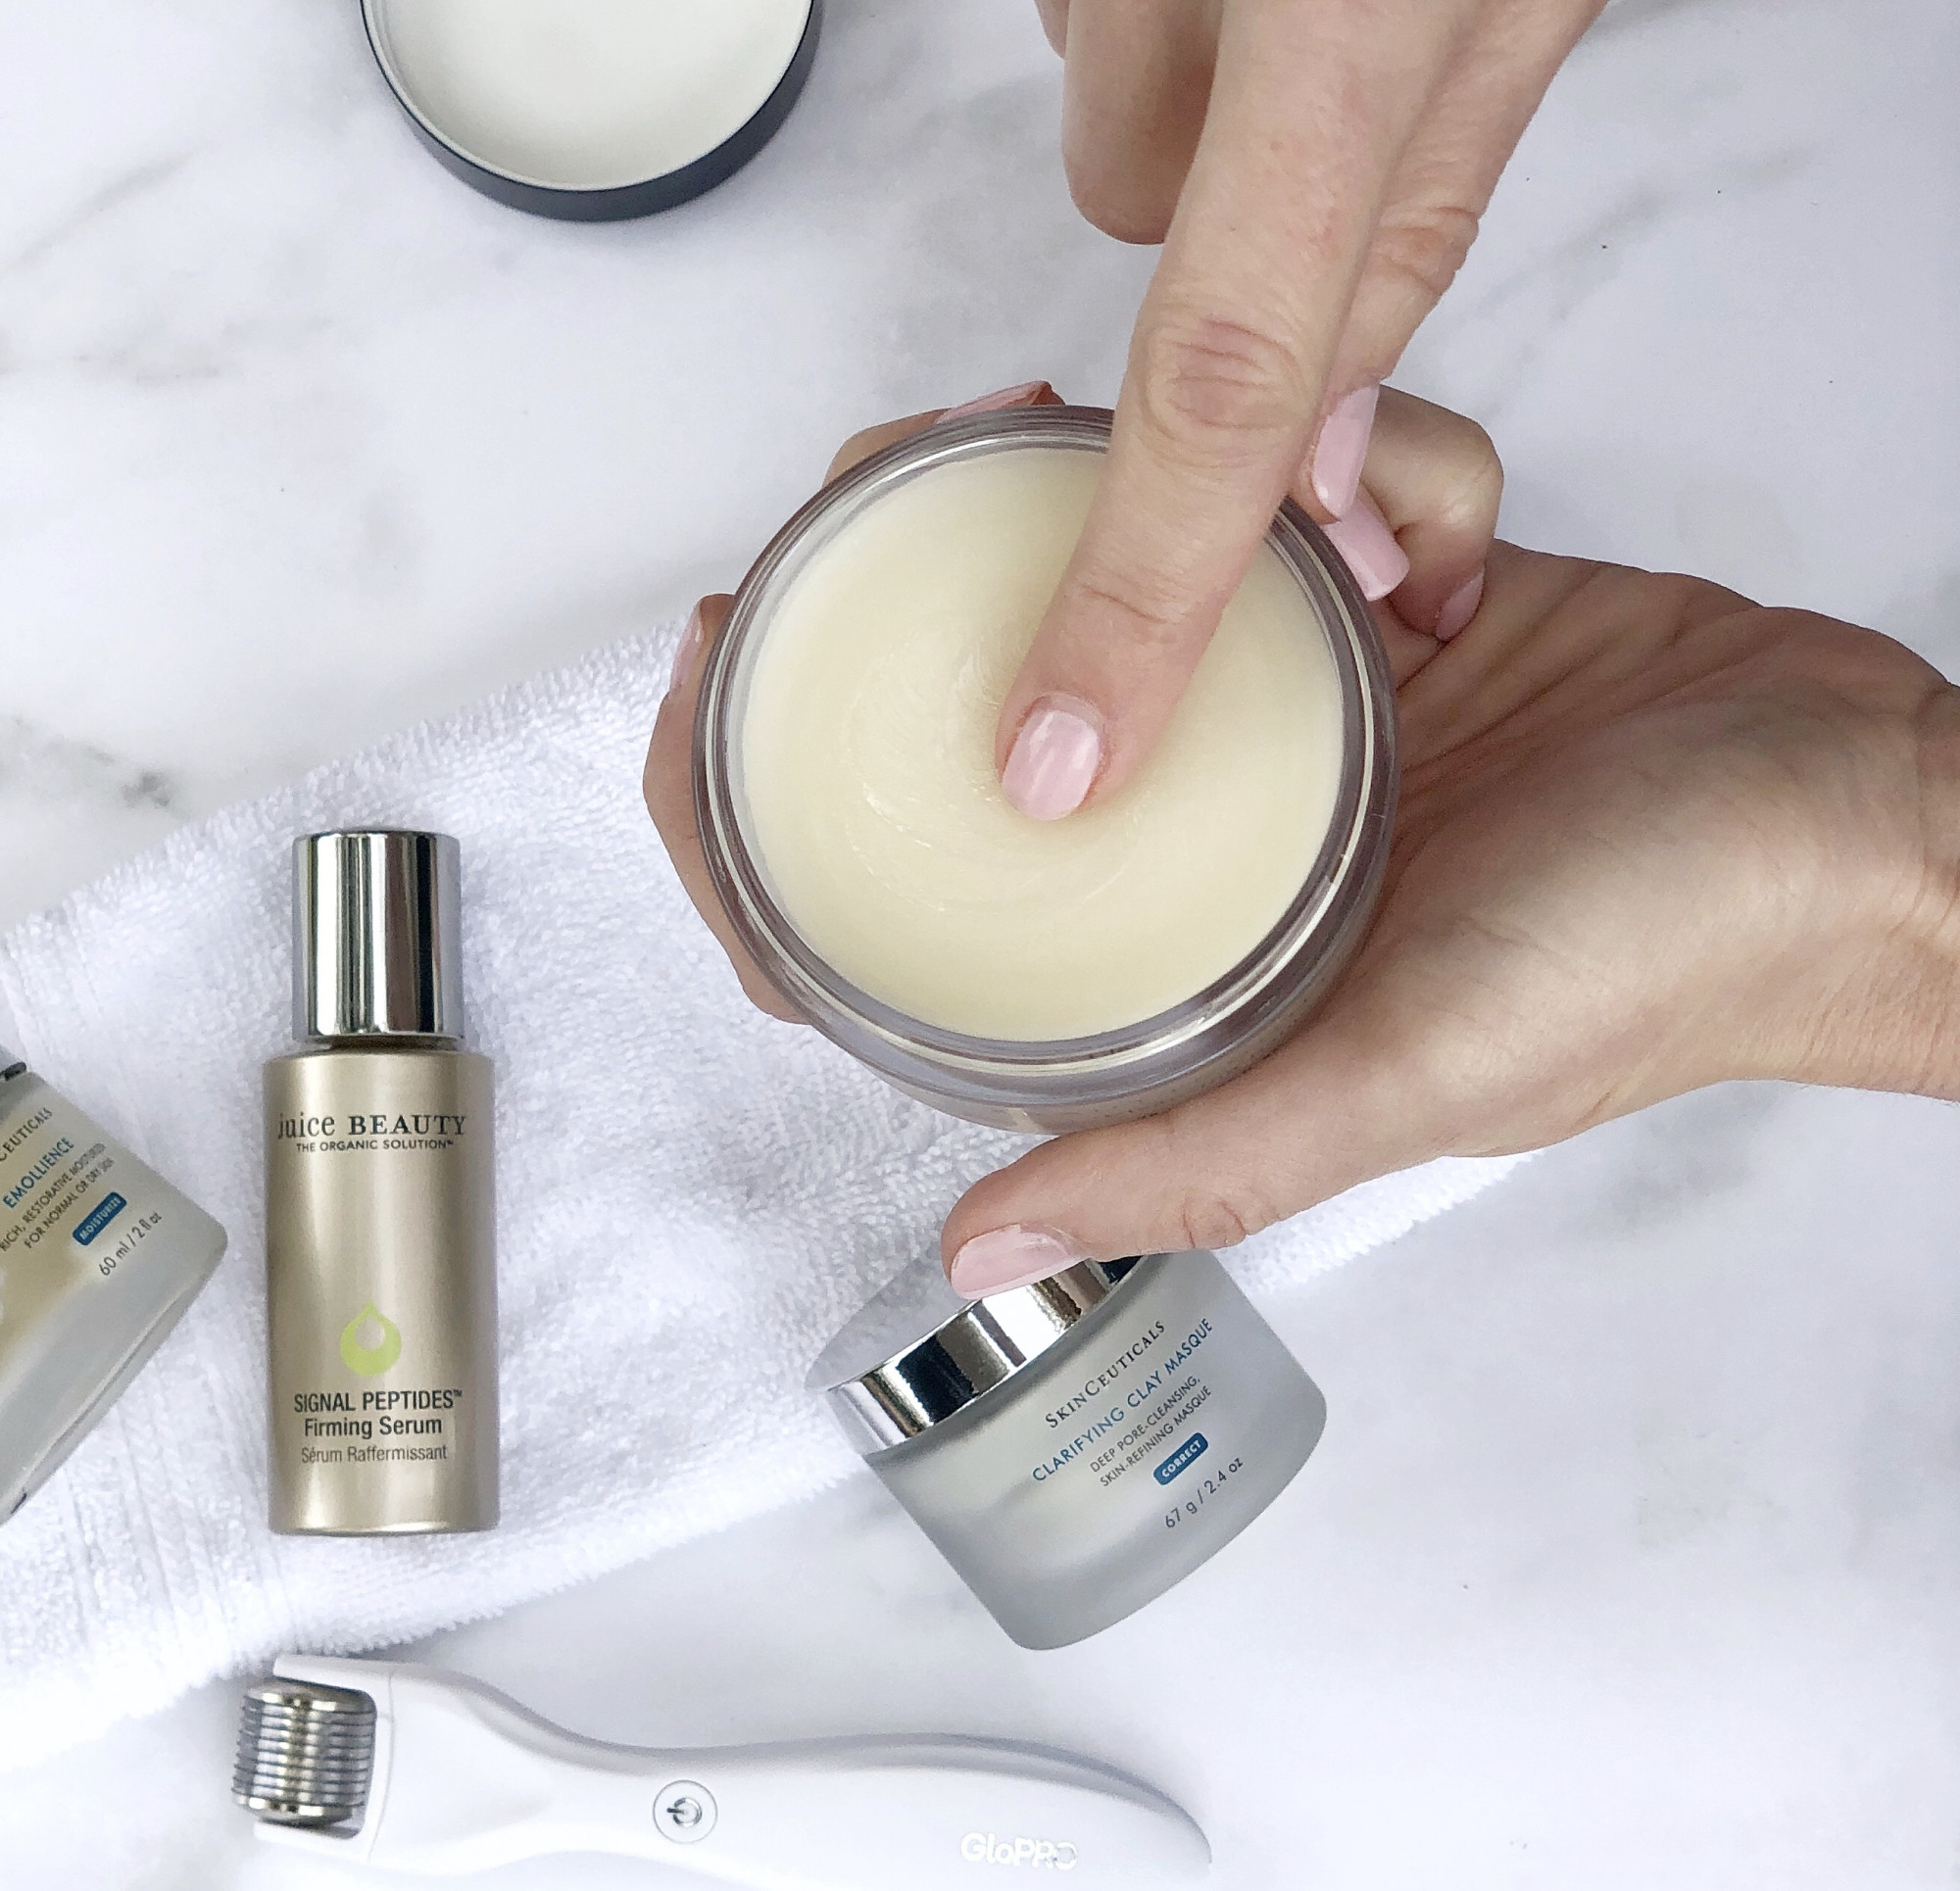 beautycounter's cleansing balm